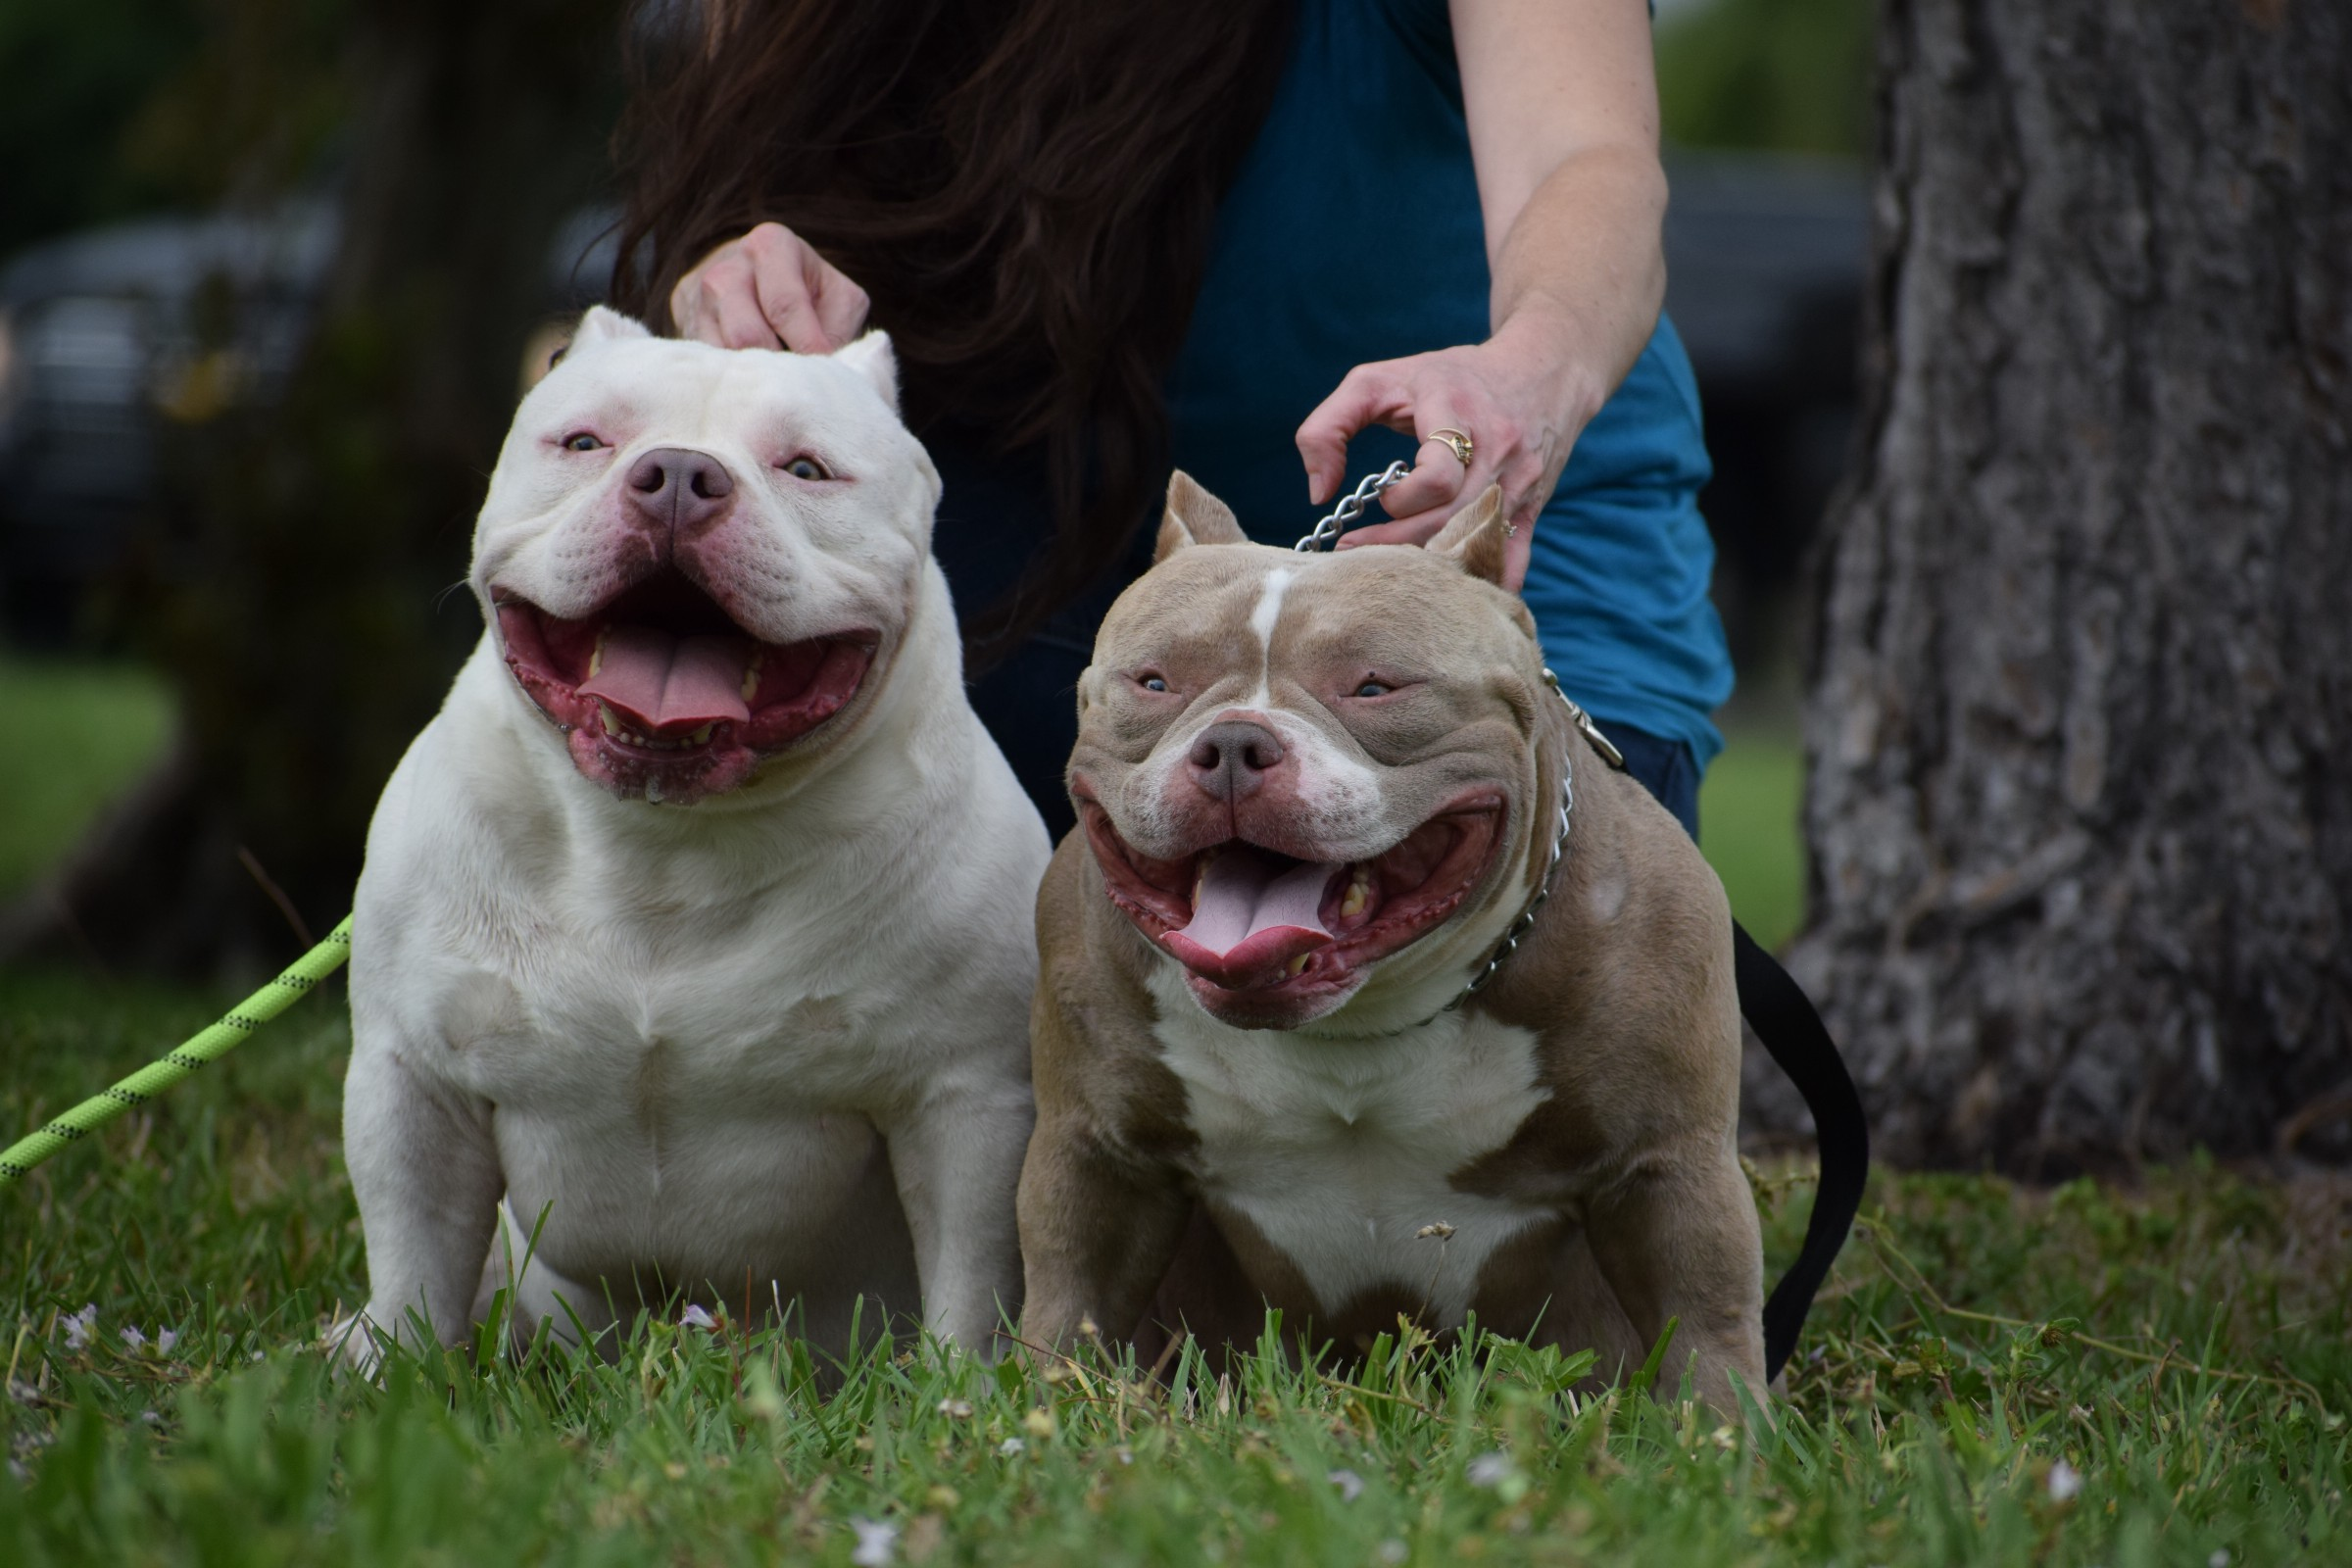 TOP POCKET BULLIES LOUIS V LINE'S VENOM & OMEGA MEET